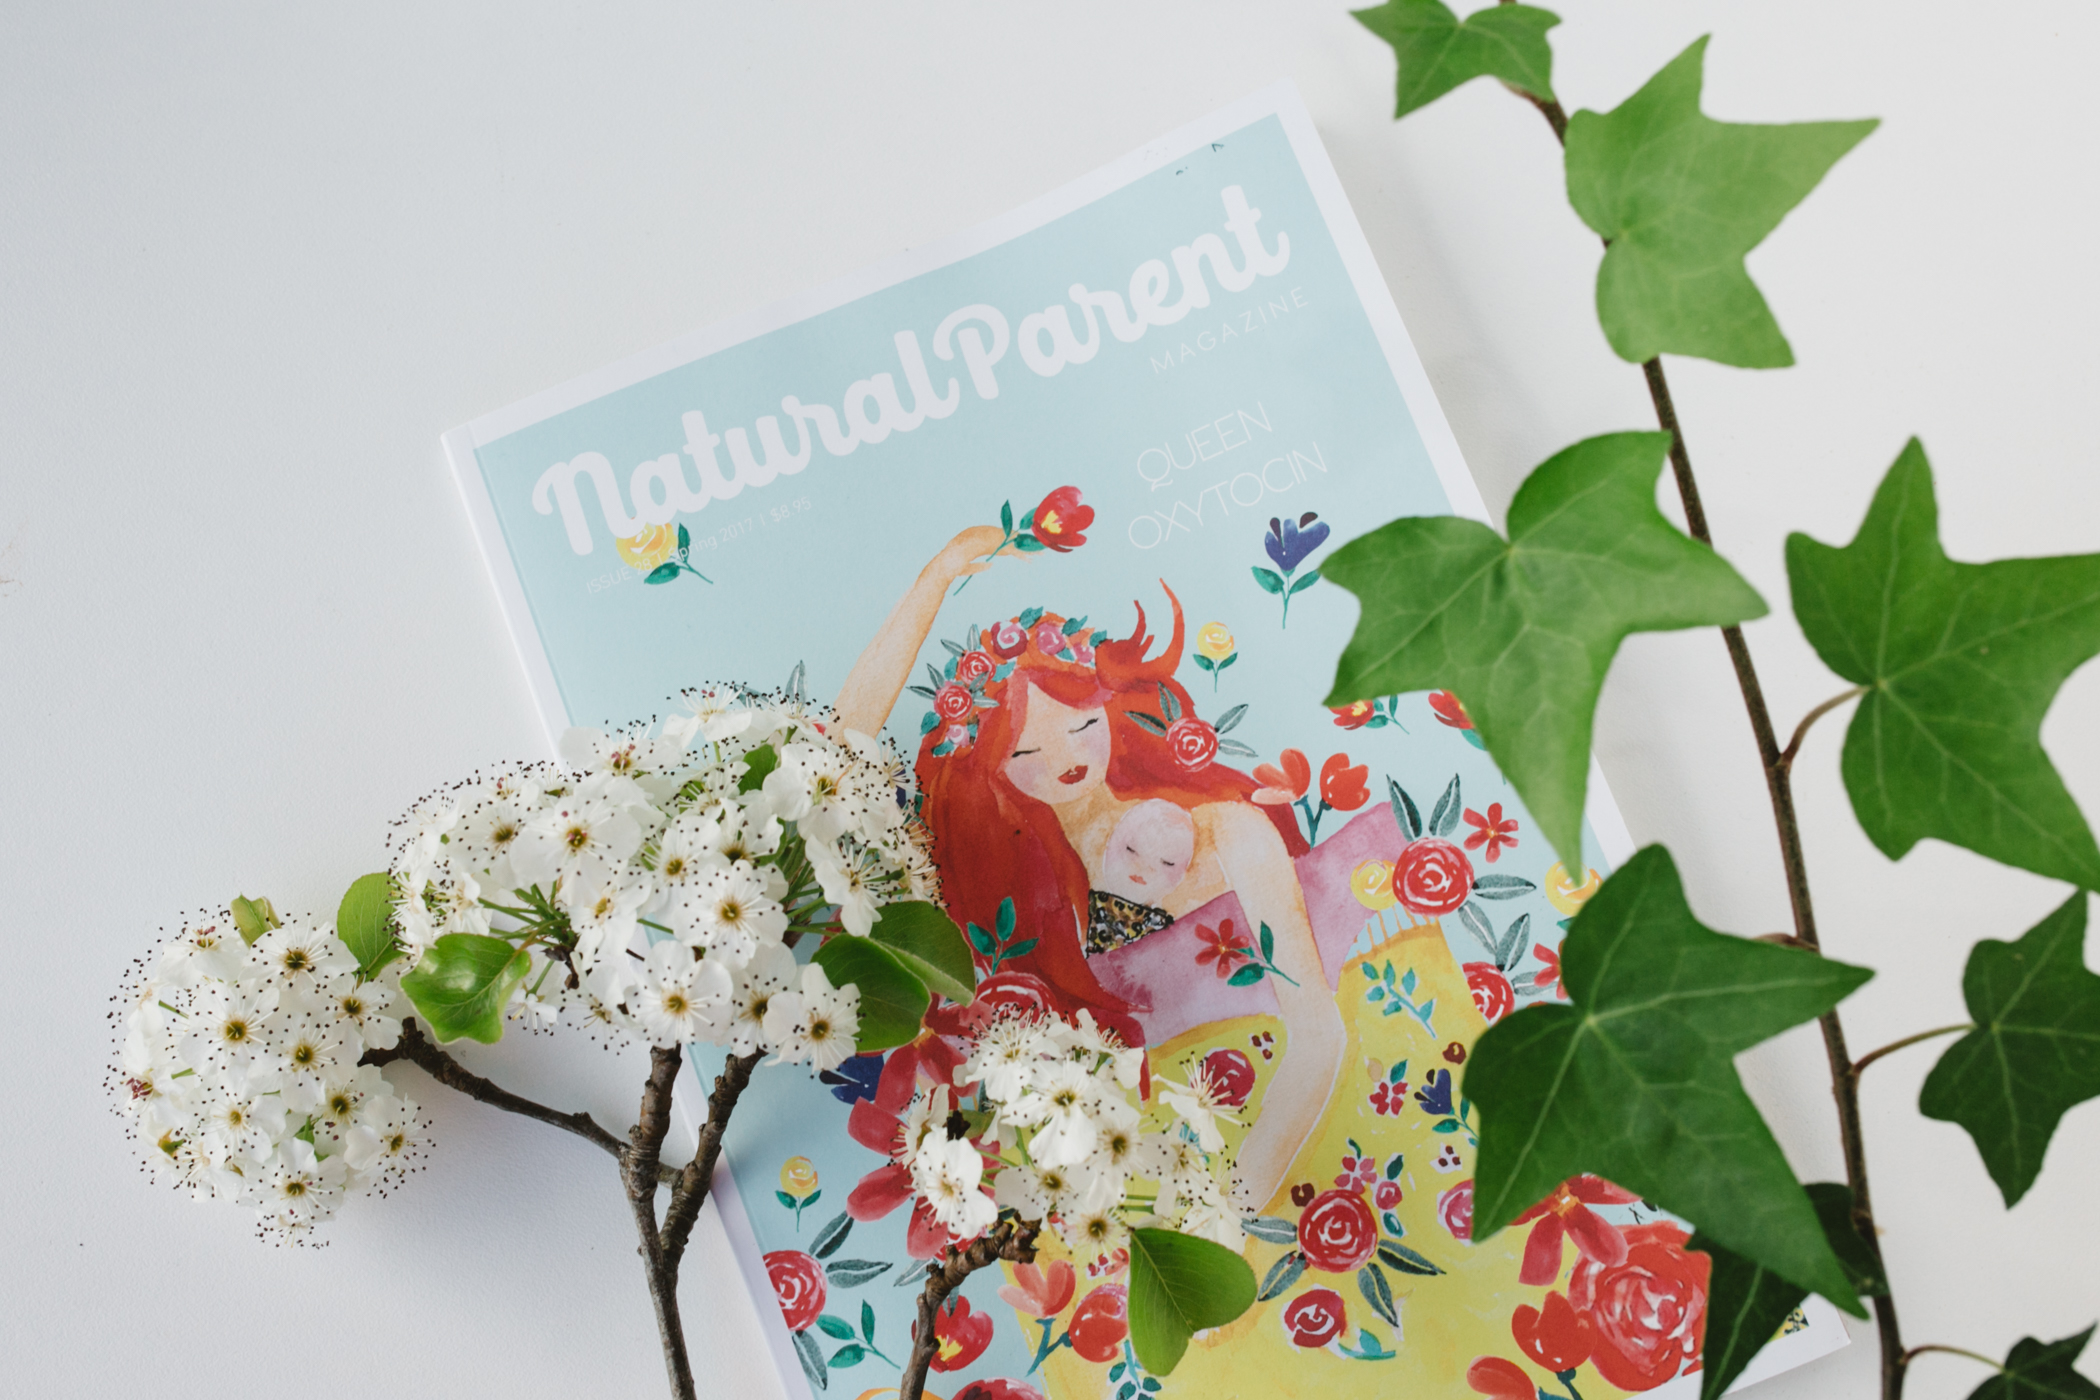 Come and check out the latest number of  The Natural Parent Magazine .